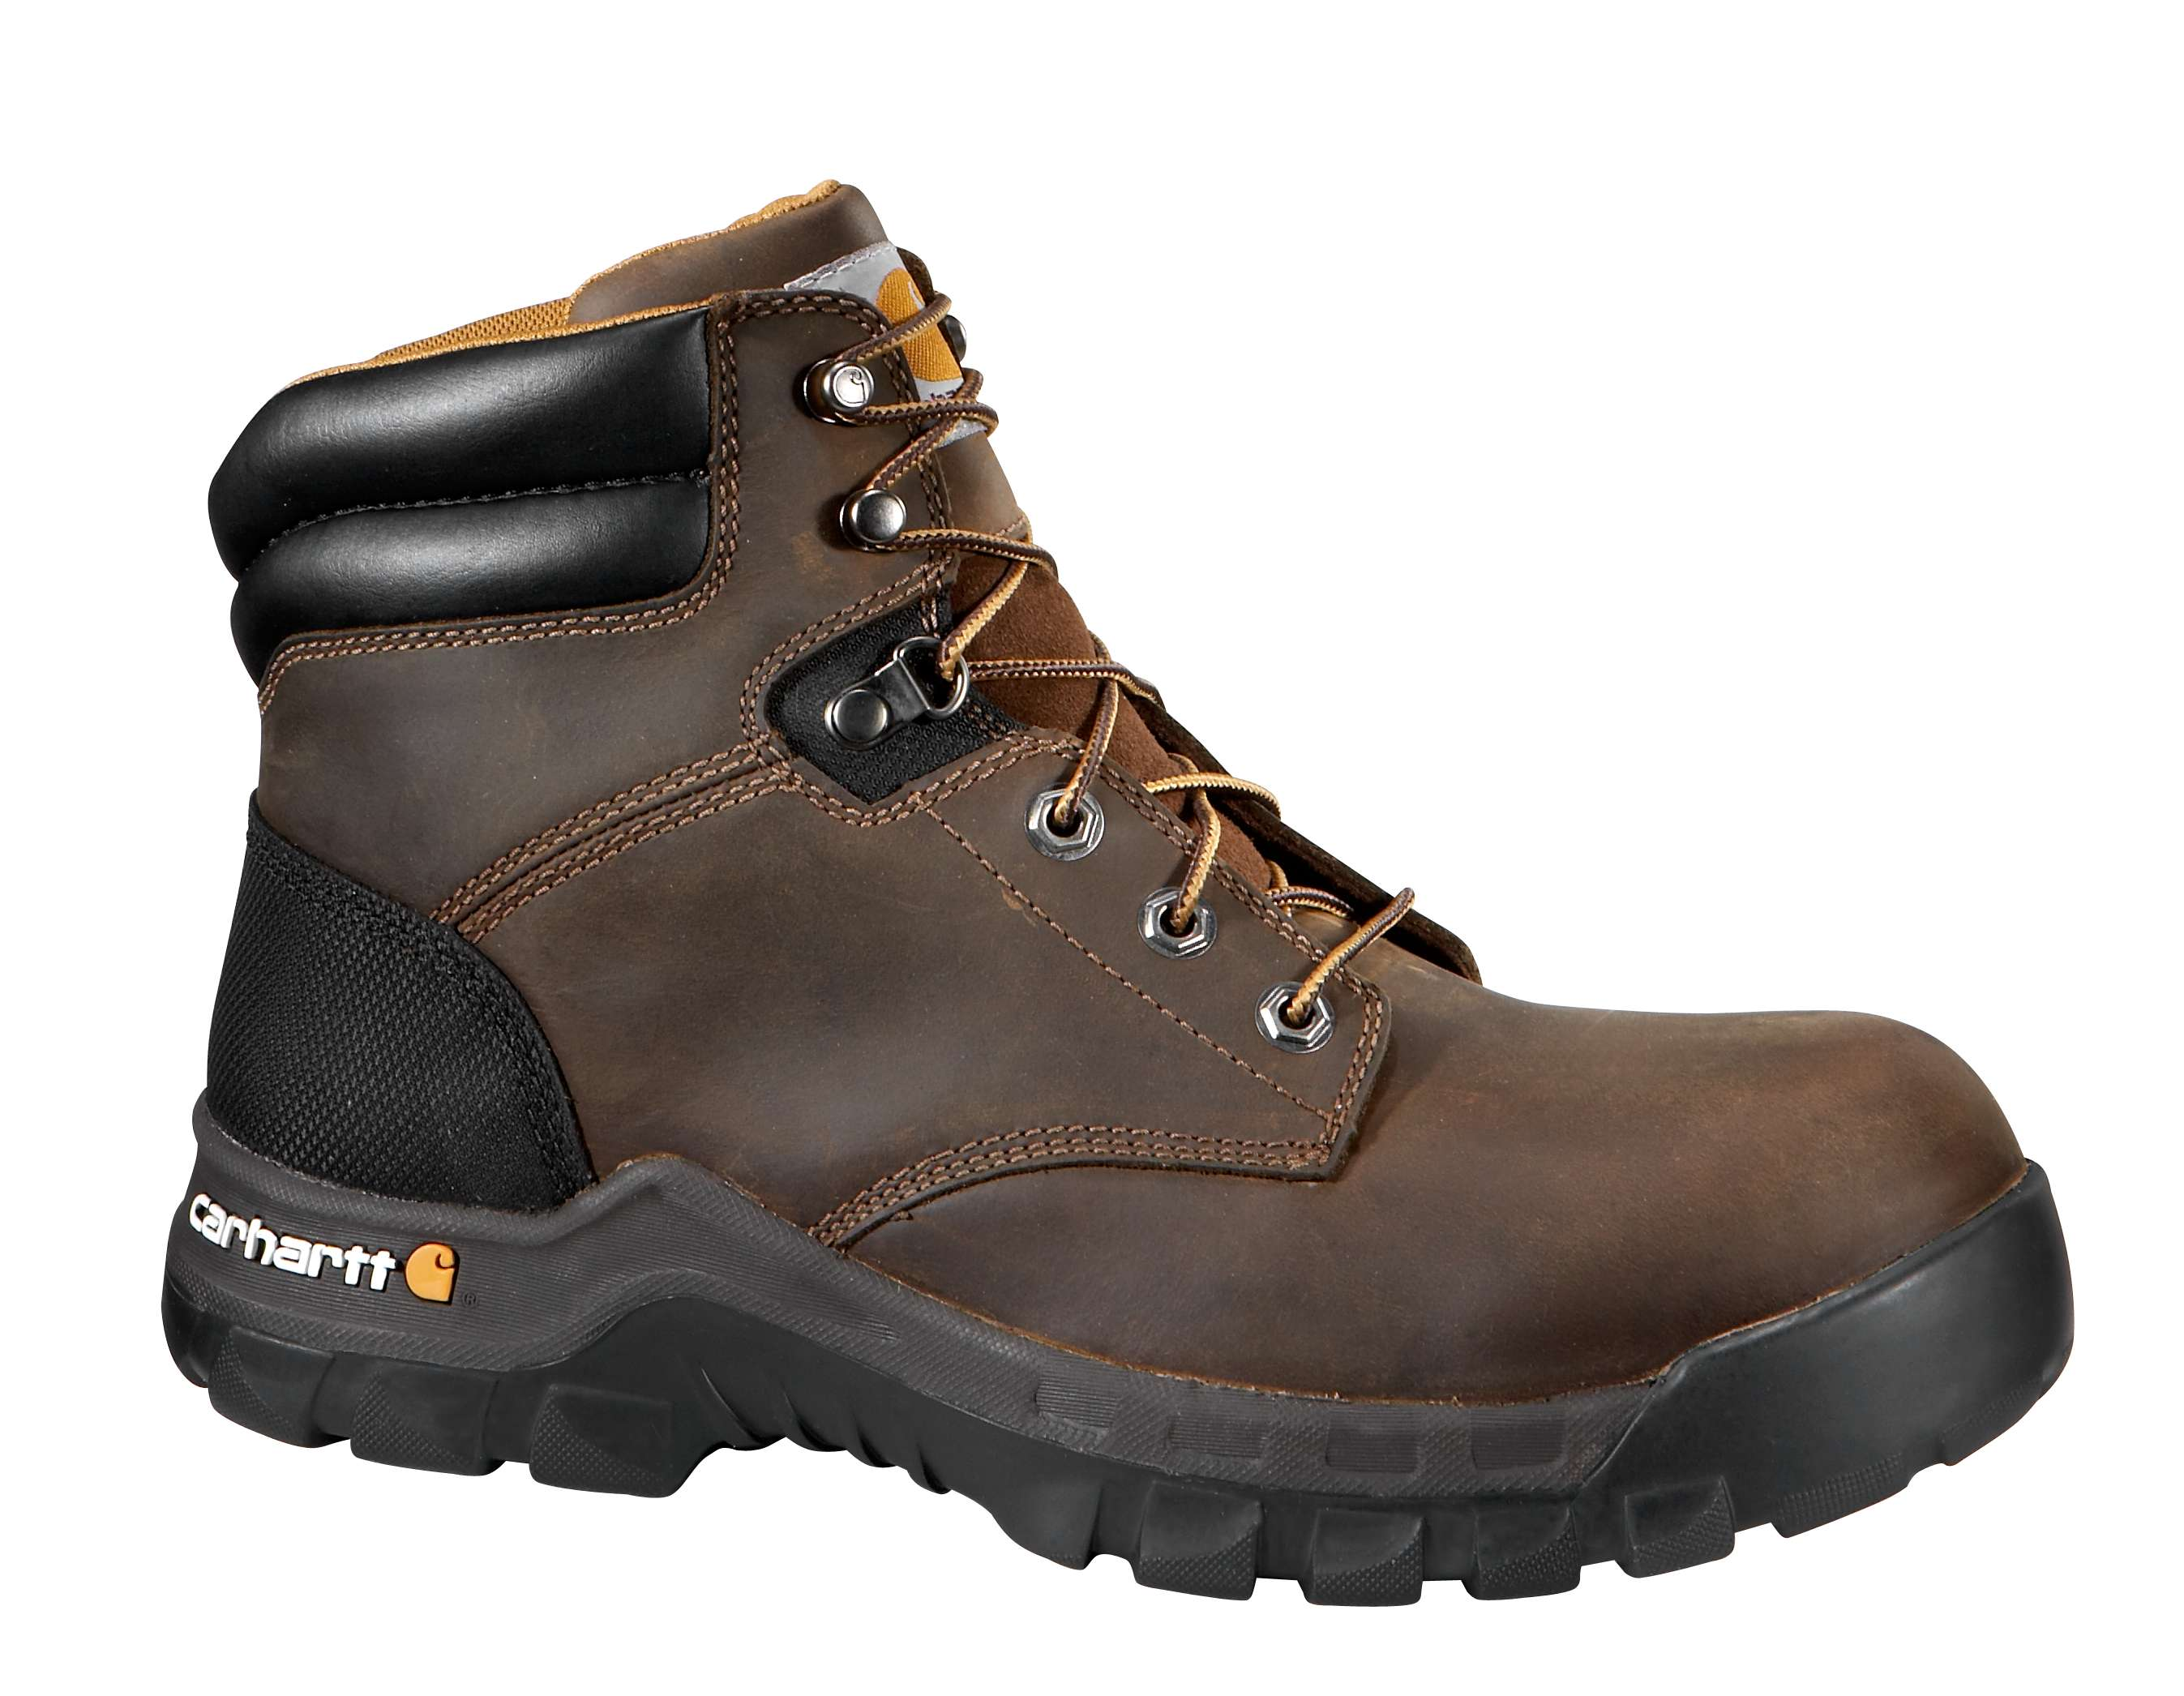 Carhartt Rugged Flex 6-Inch Non-Safety Toe Work Boot